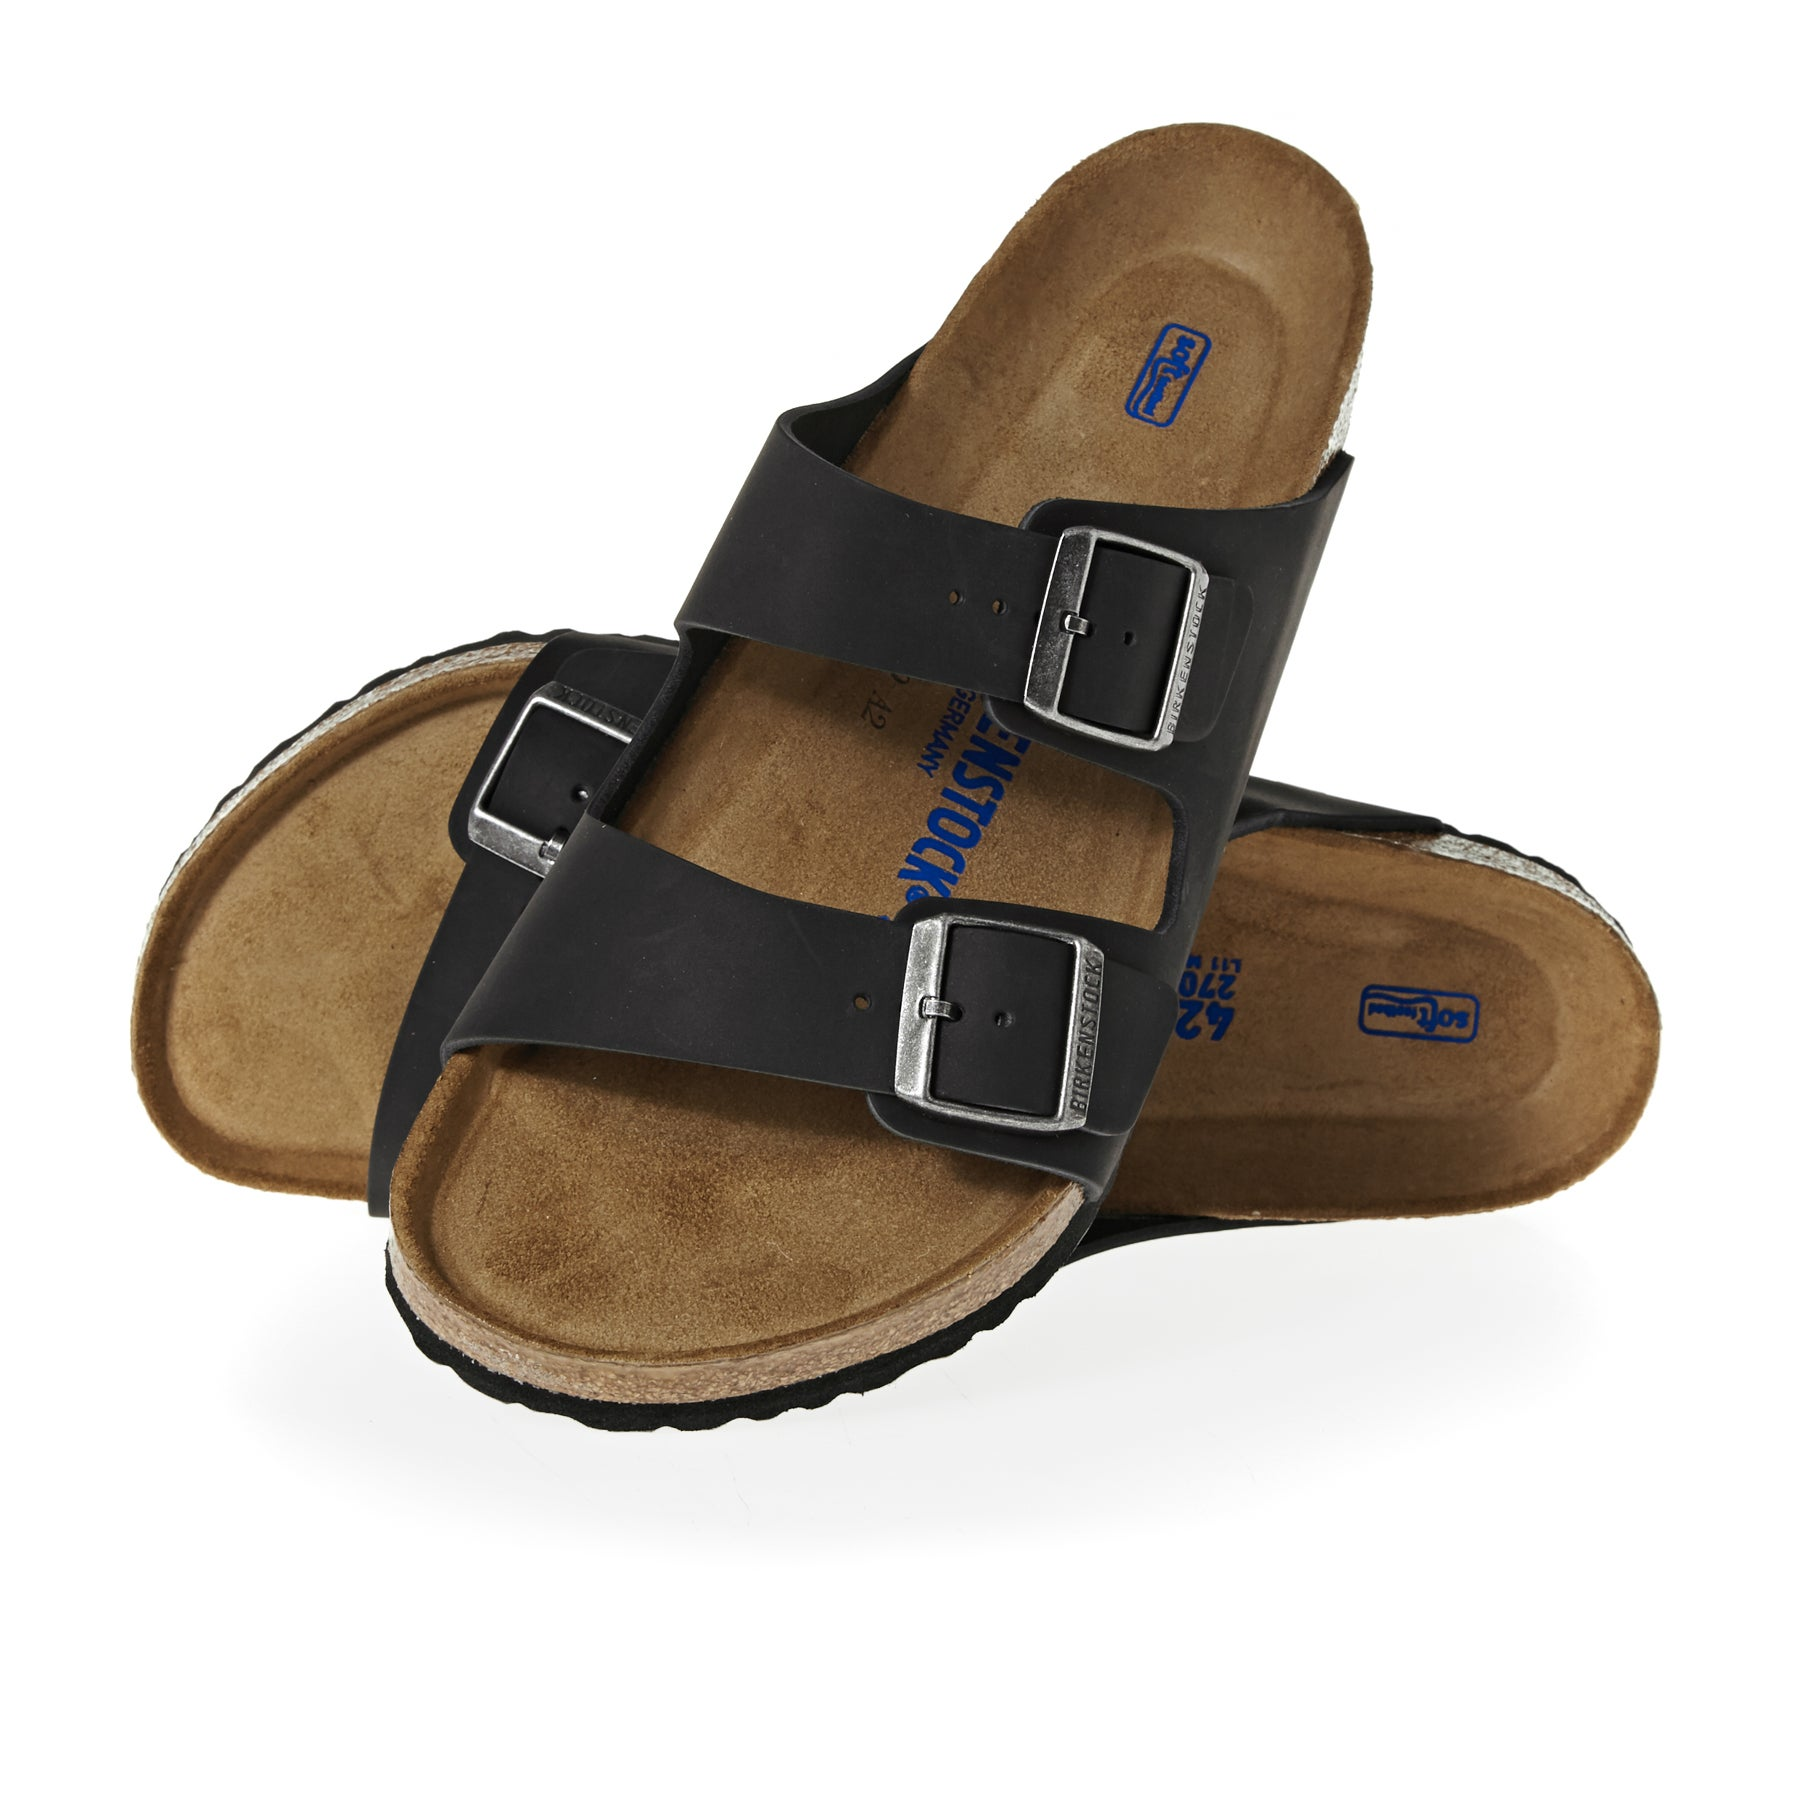 81978bfdddcf Birkenstock Arizona Oiled Leather Soft Footbed Sandals available ...